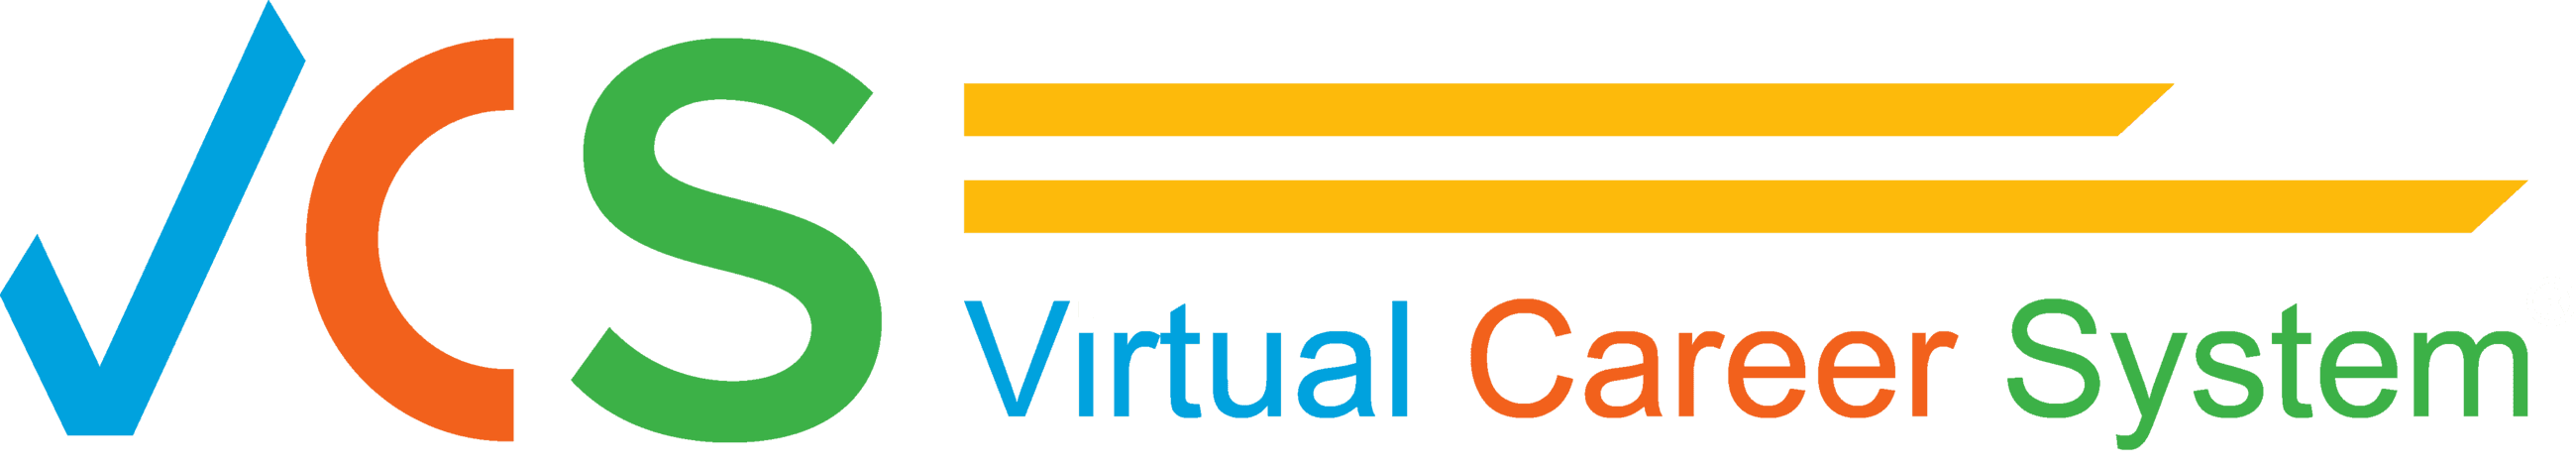 Virtual Career System Logo - VCS - Blue V, Orange C, Green S Opens in new window